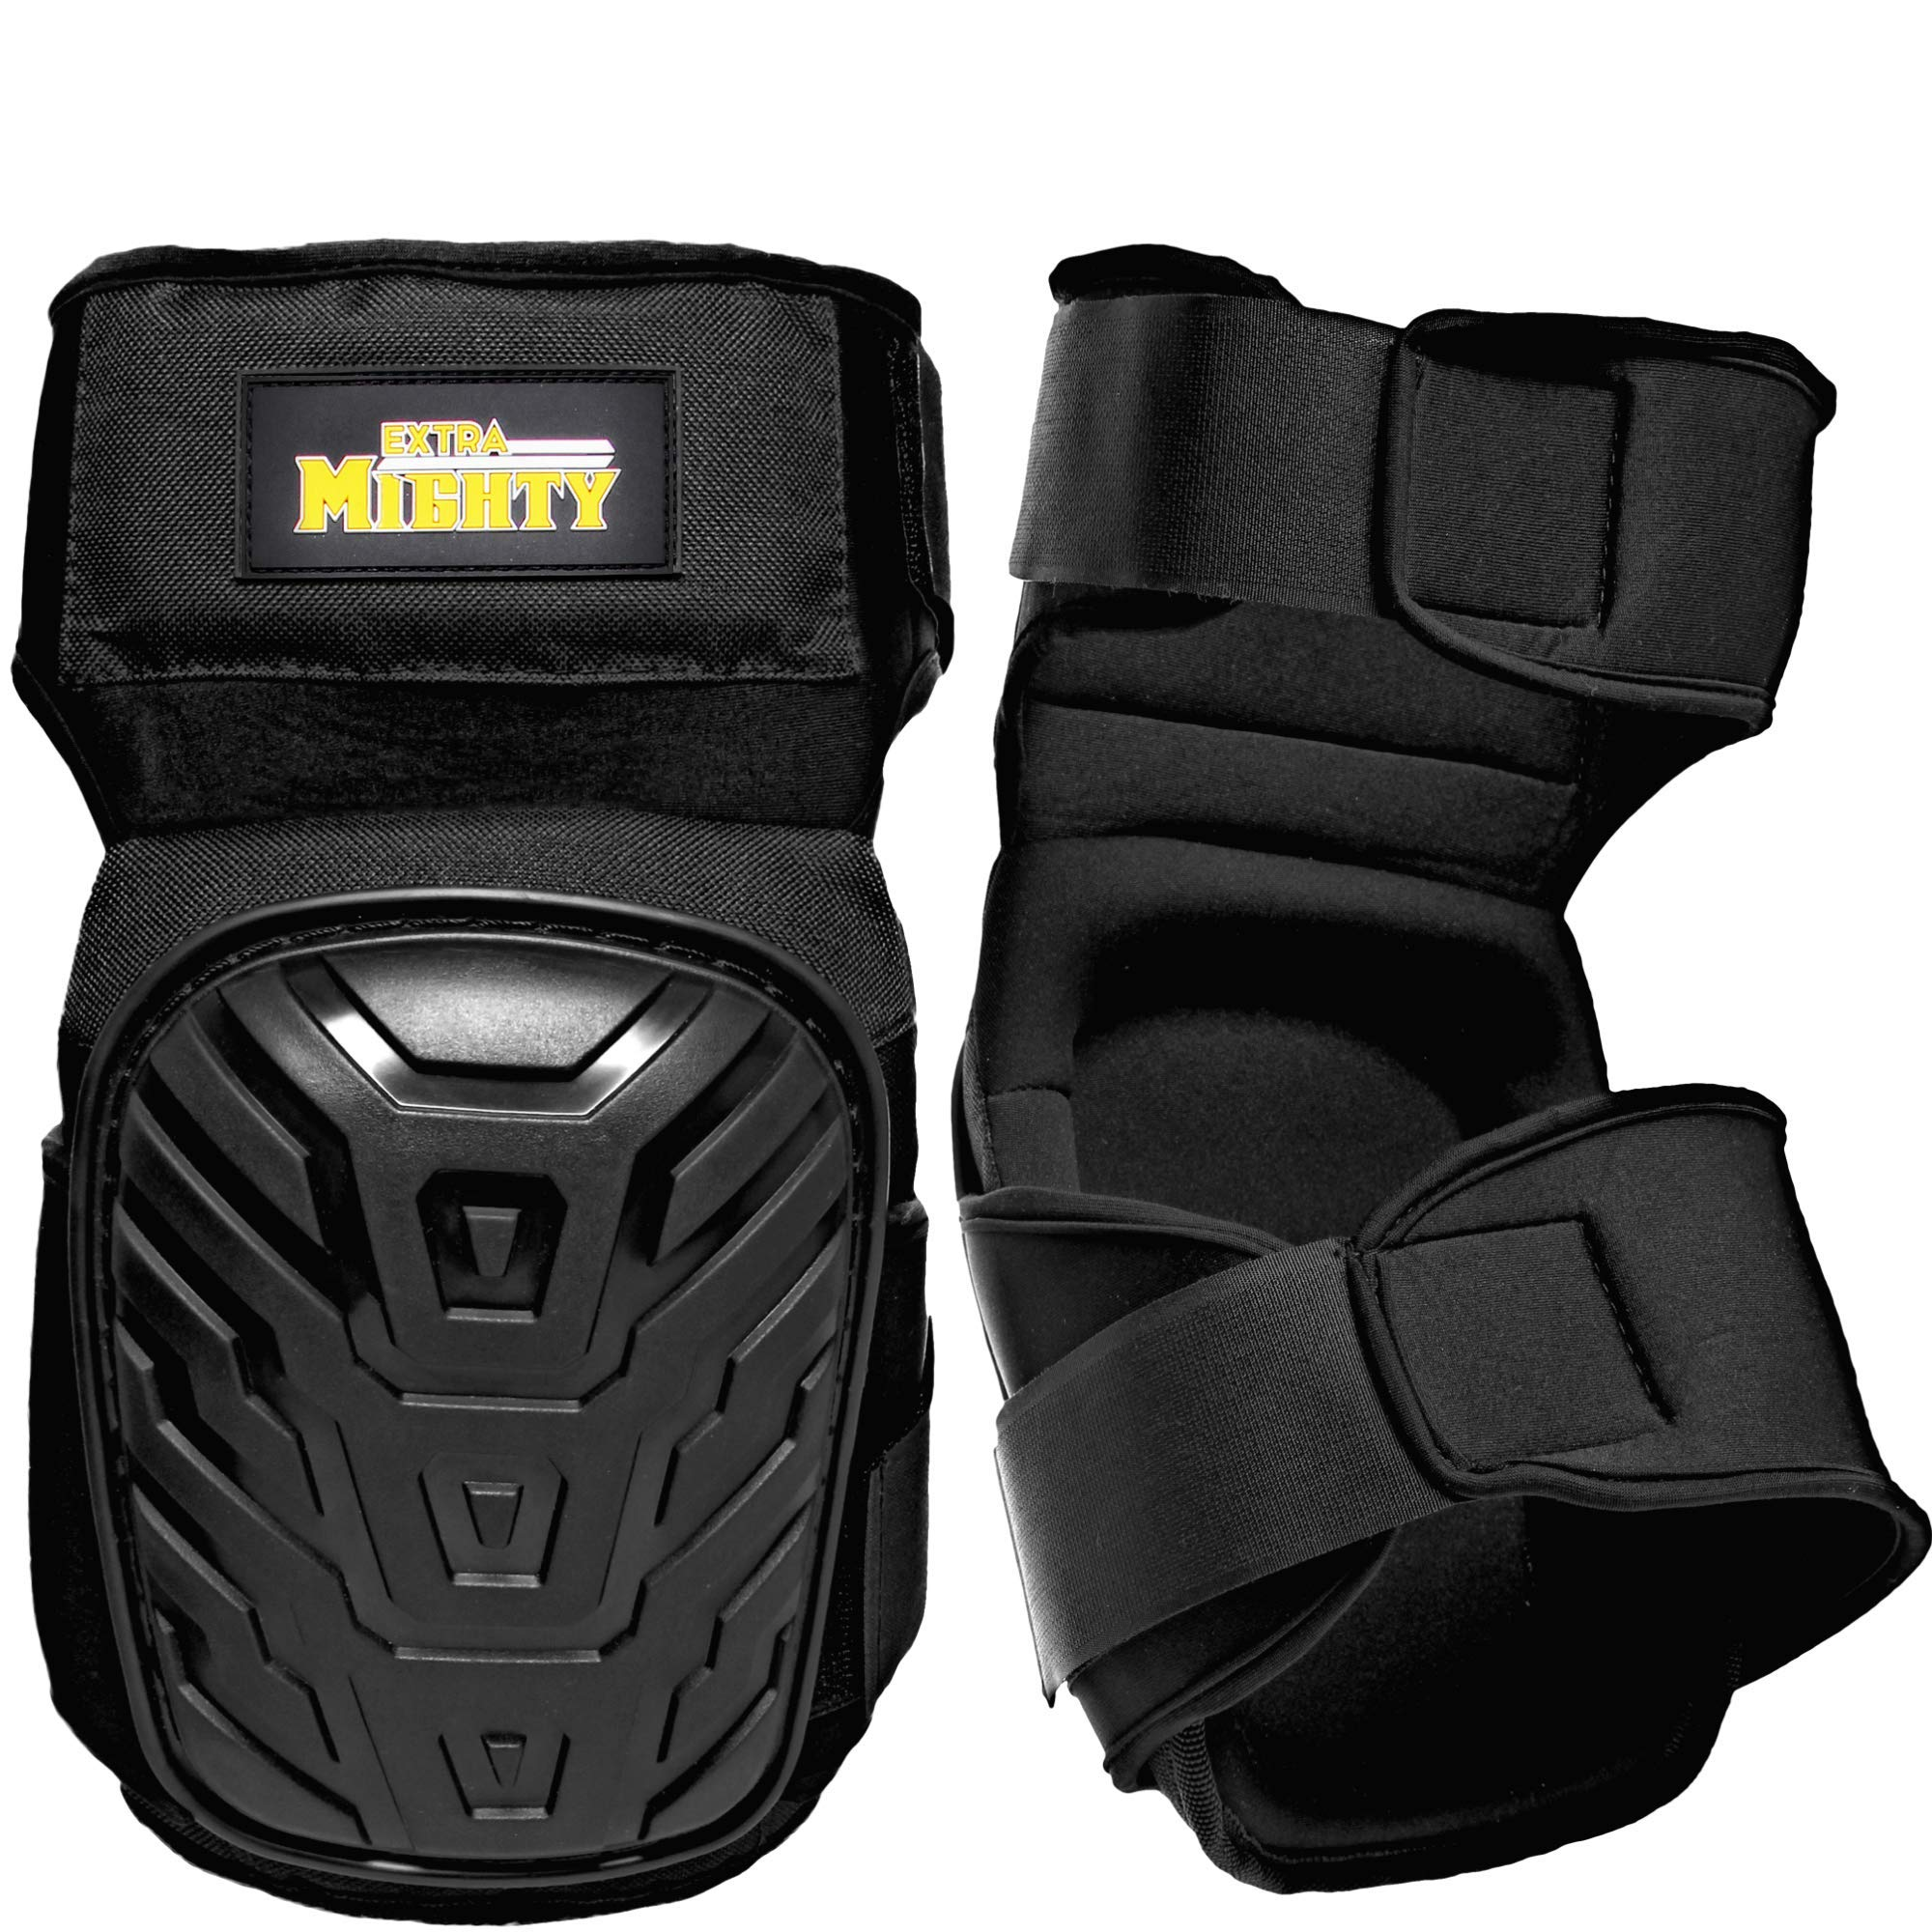 ExtraMighty Professional Knee Pads - Heavy Duty Foam Padding and Comfortable Gel Cushion - Non Slip Adjustable Double Straps Without Clips That Snap Off by Extra Mighty